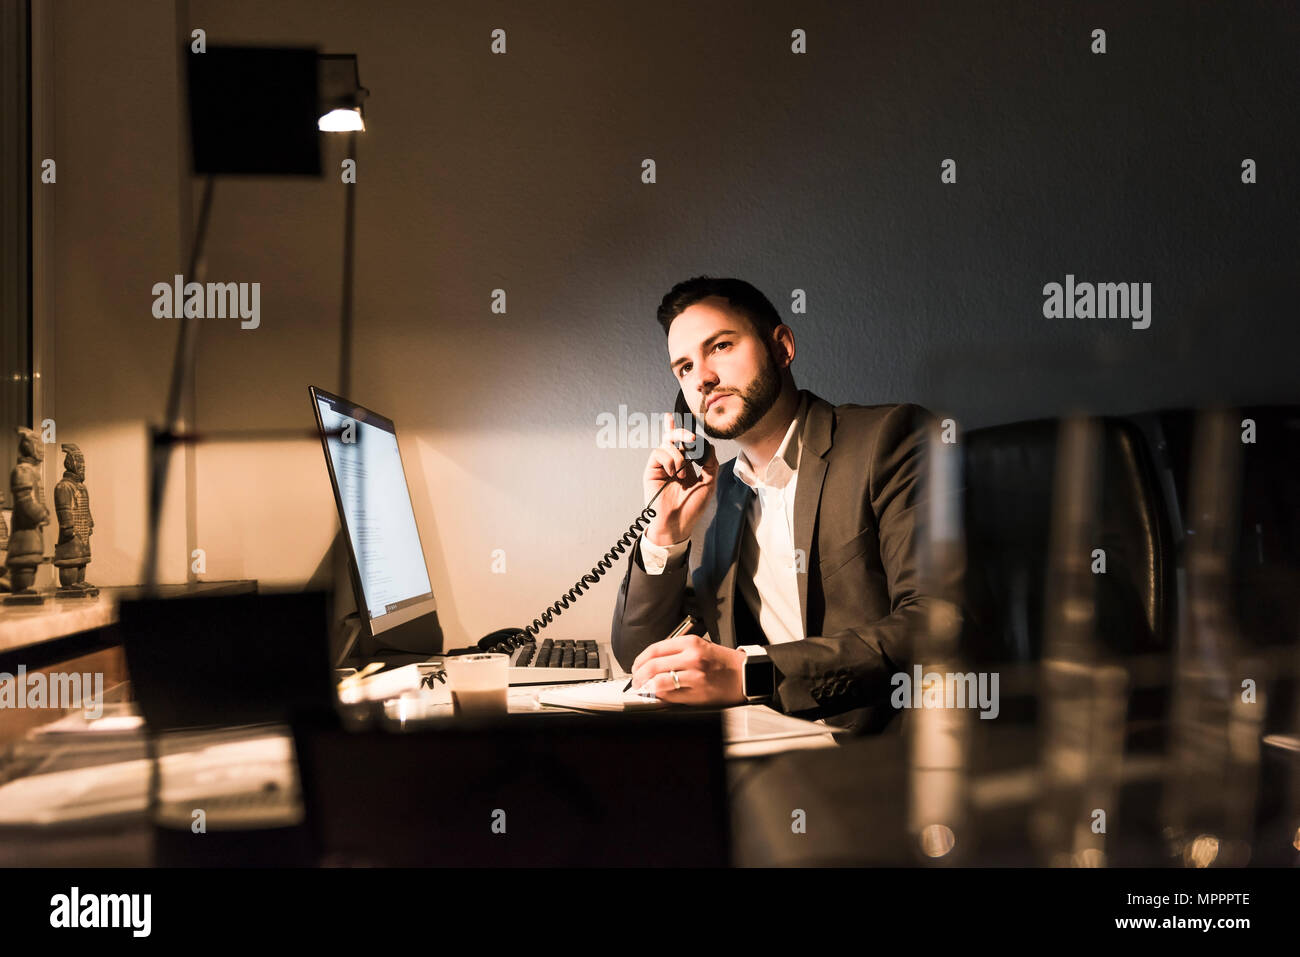 Businessman on the phone in office at night - Stock Image